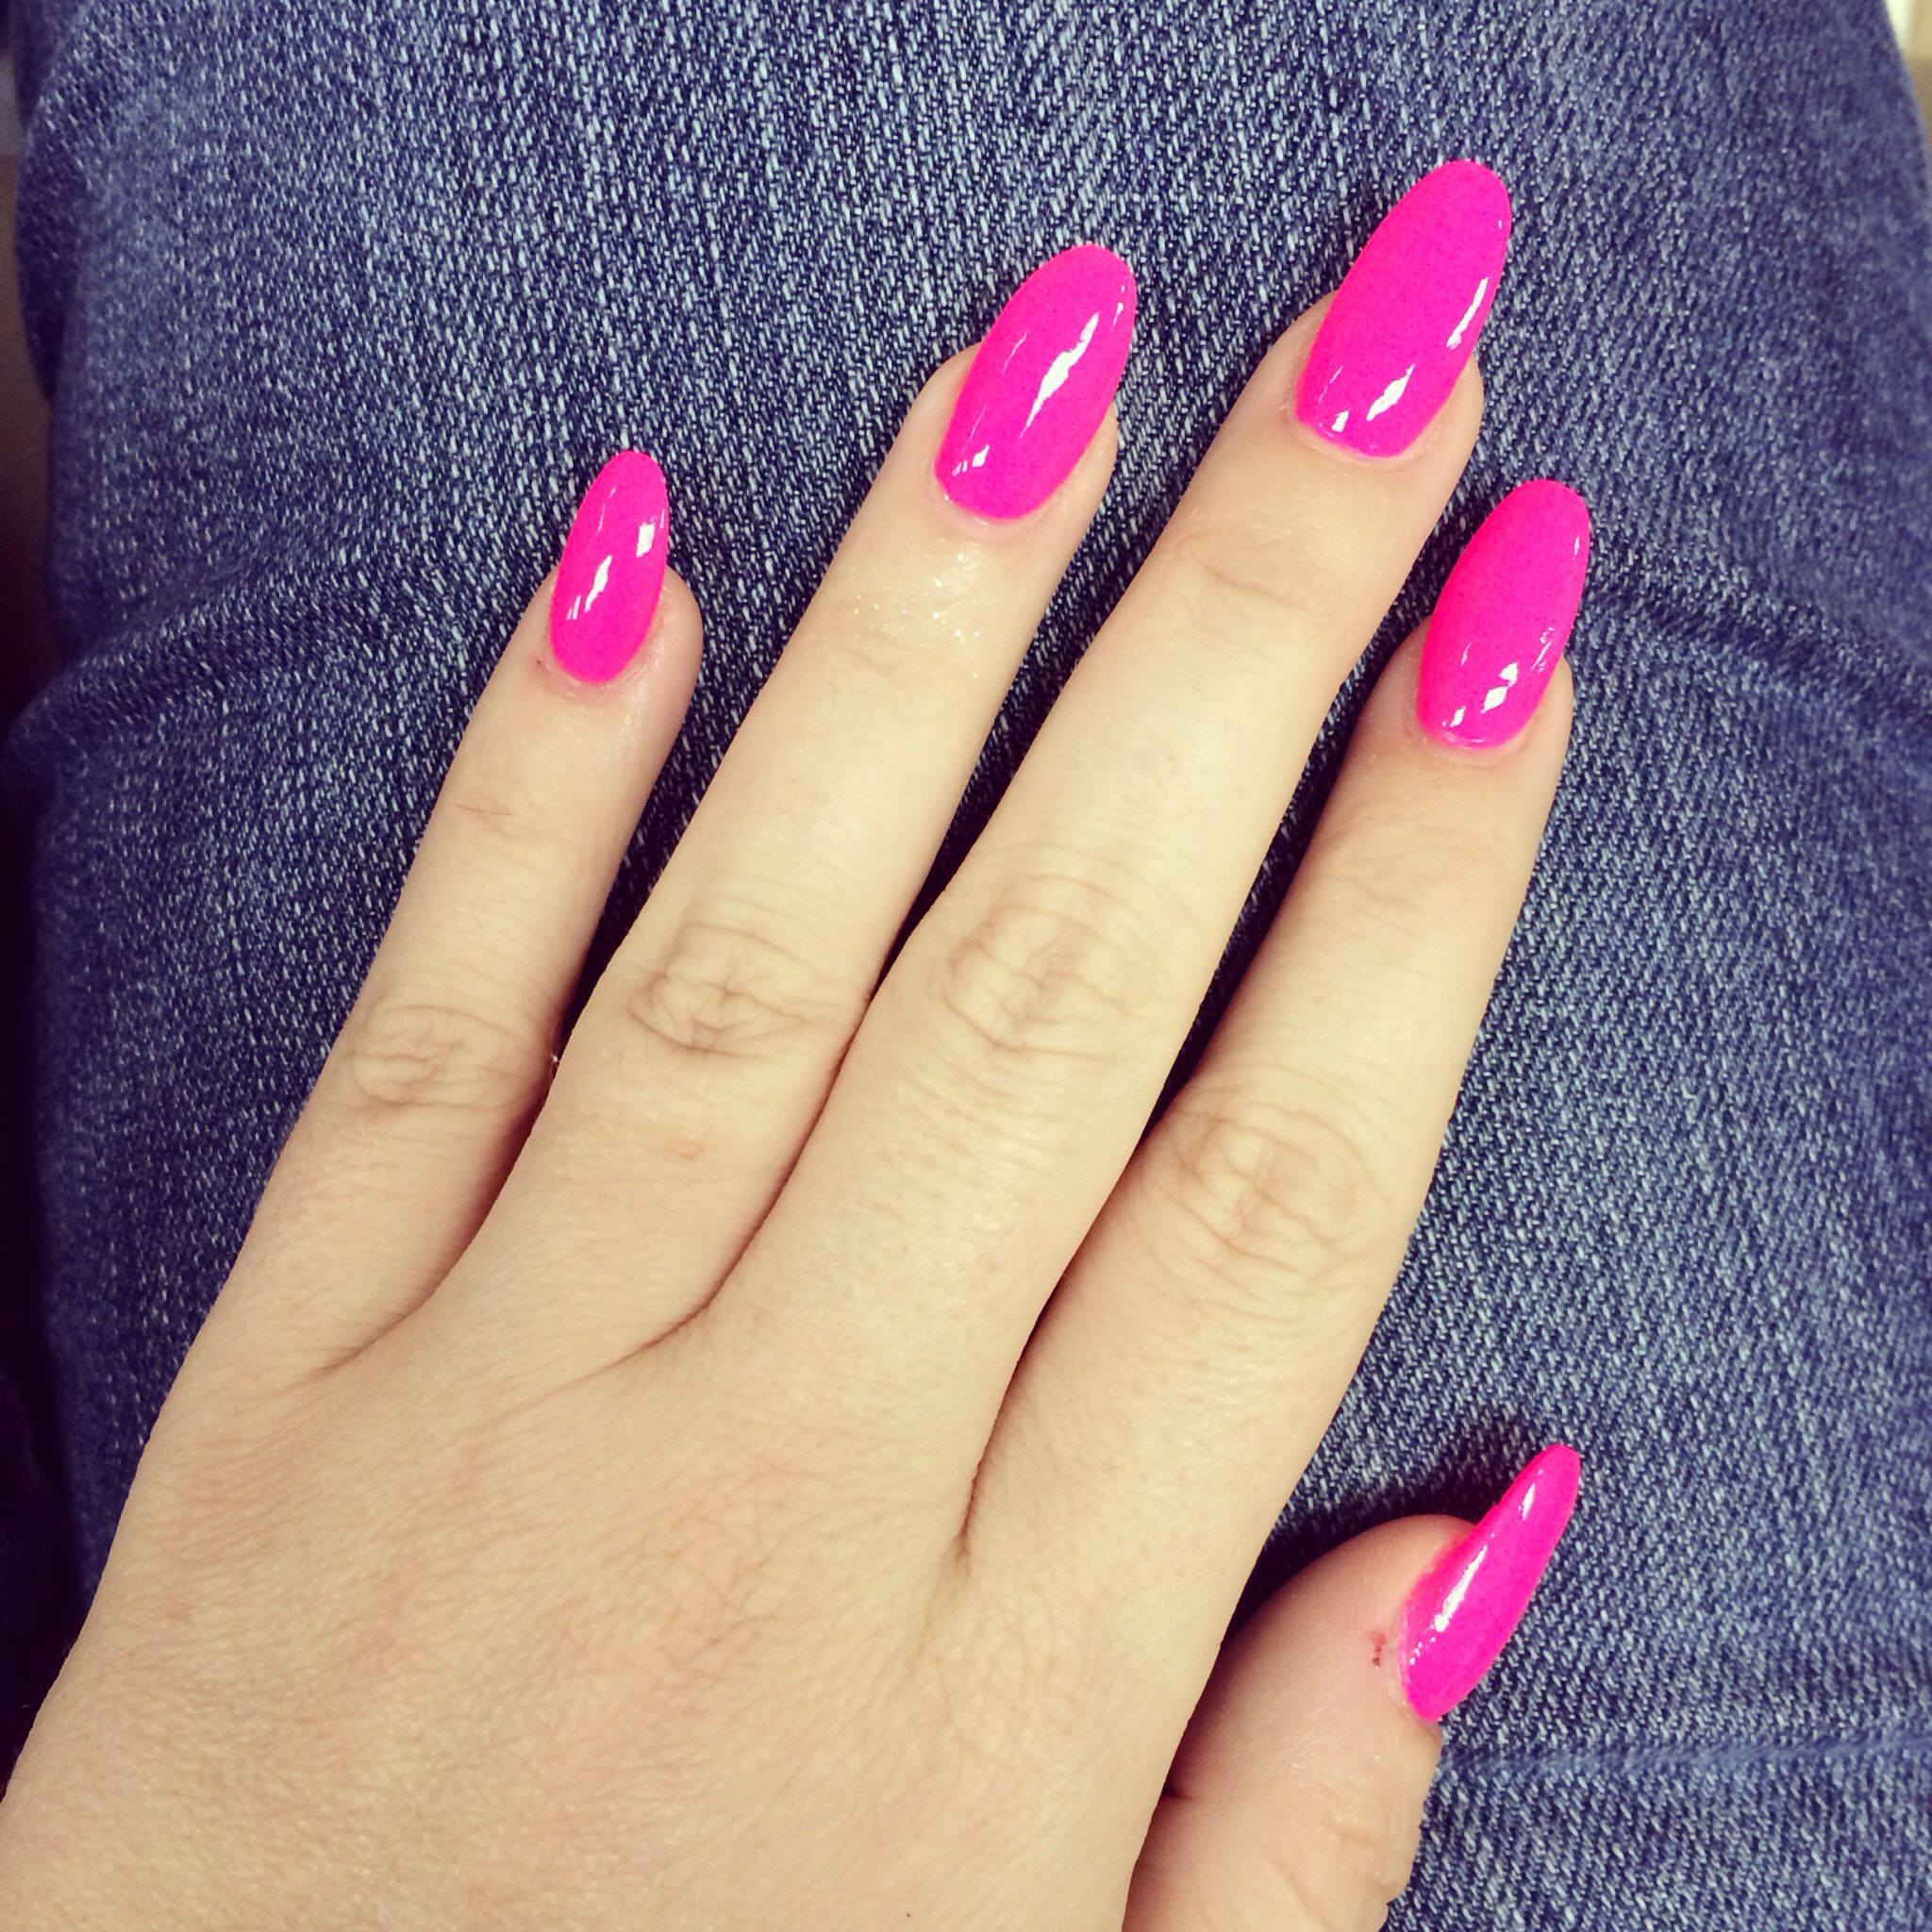 Nail design hot pink and pointy for me today nails pinterest nail design hot pink and pointy for me today prinsesfo Choice Image